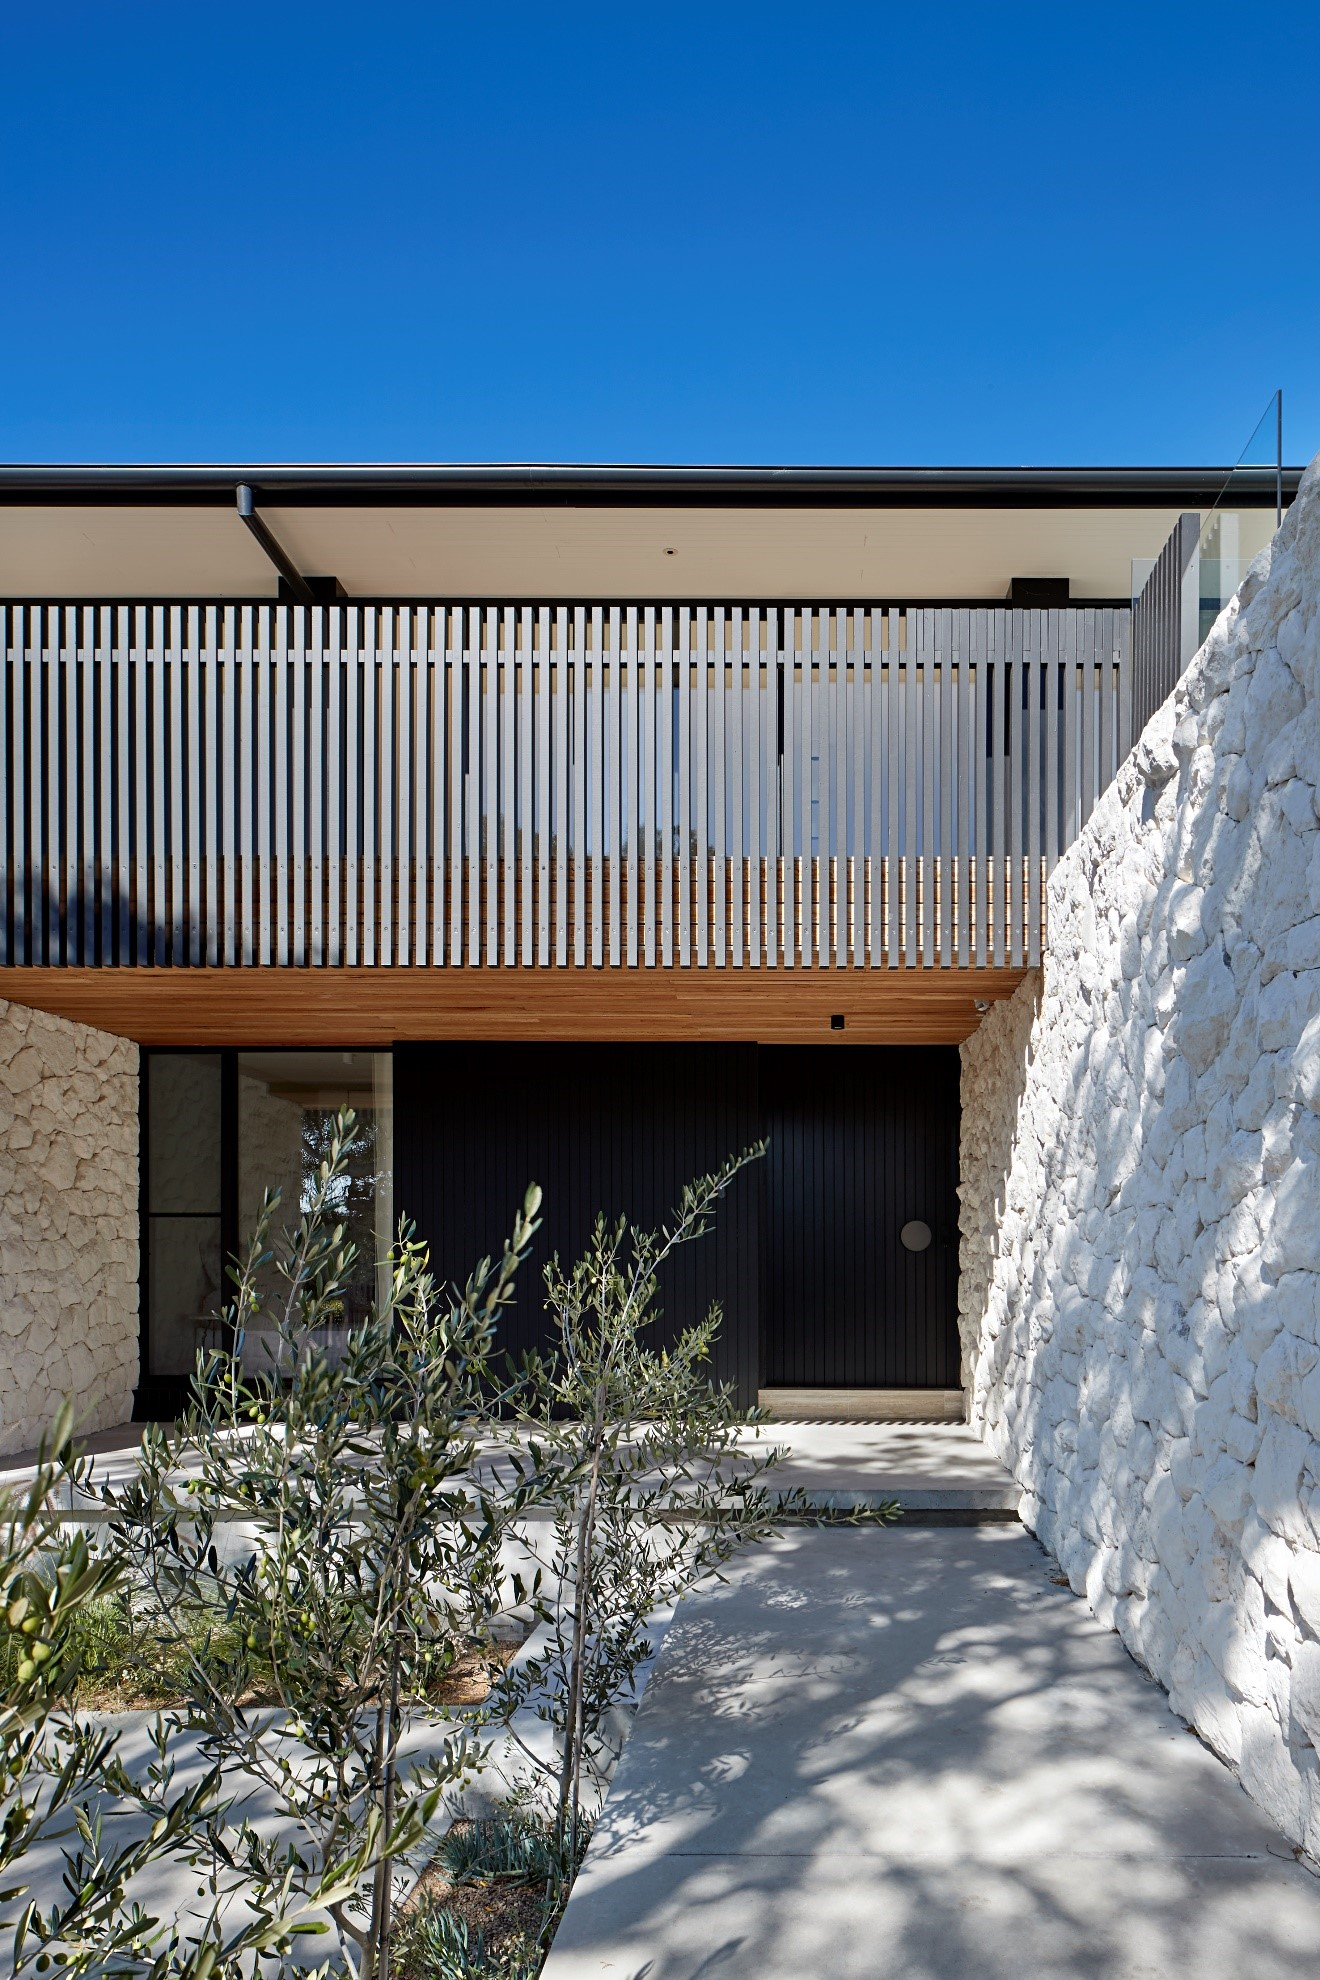 Both Aesthetically And Architecturally, This Home Was An Exercise In Restraint And Refinement, Less Can Often Be More